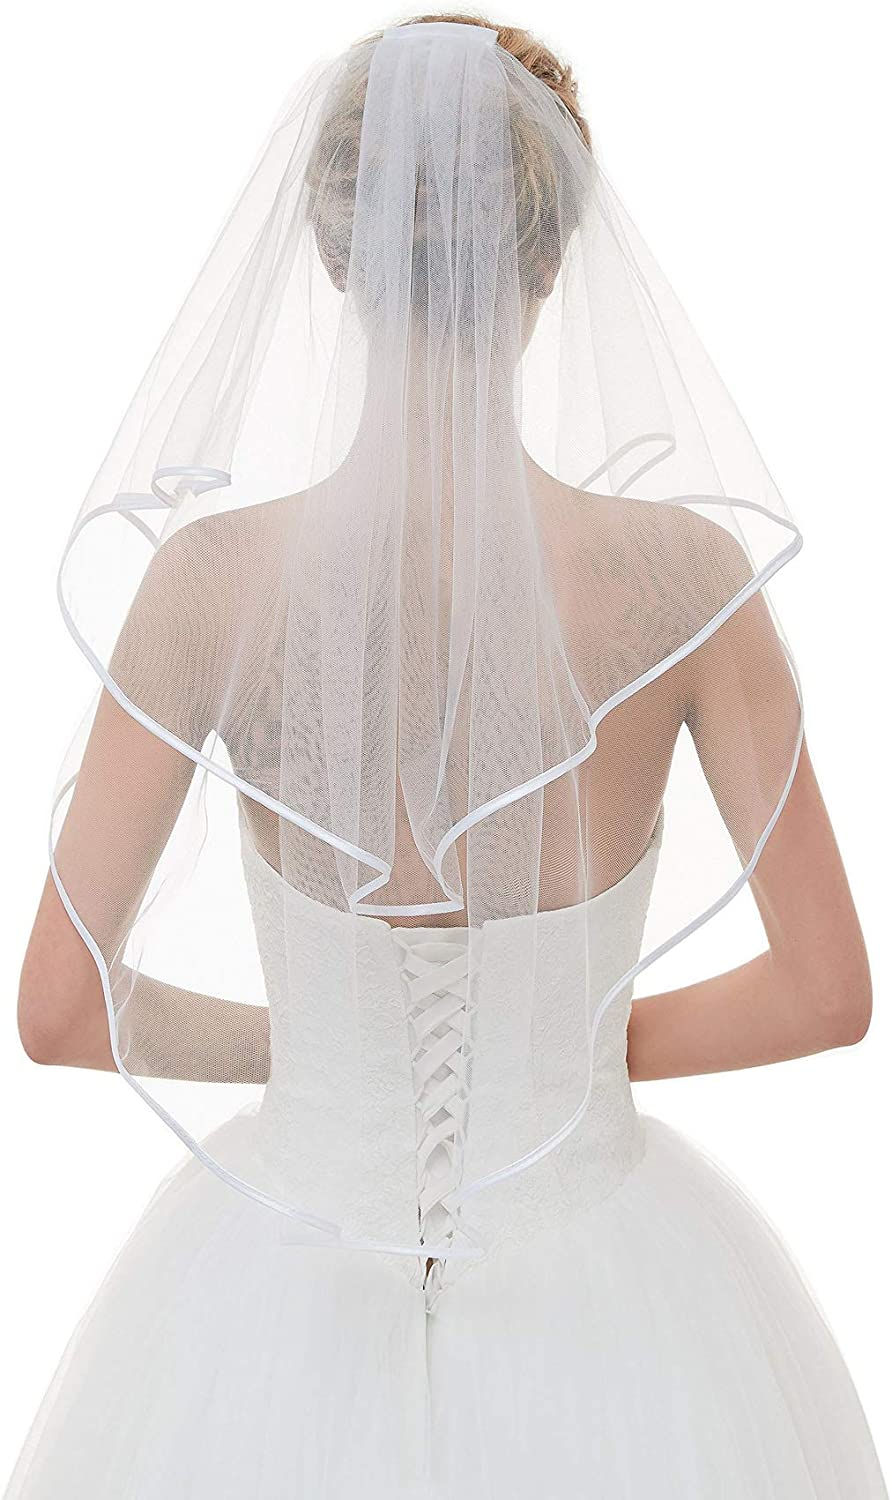 AnDream White Ivory Two Layers Bridal Veil with Comb for Wedding Dresses Accessories VL02